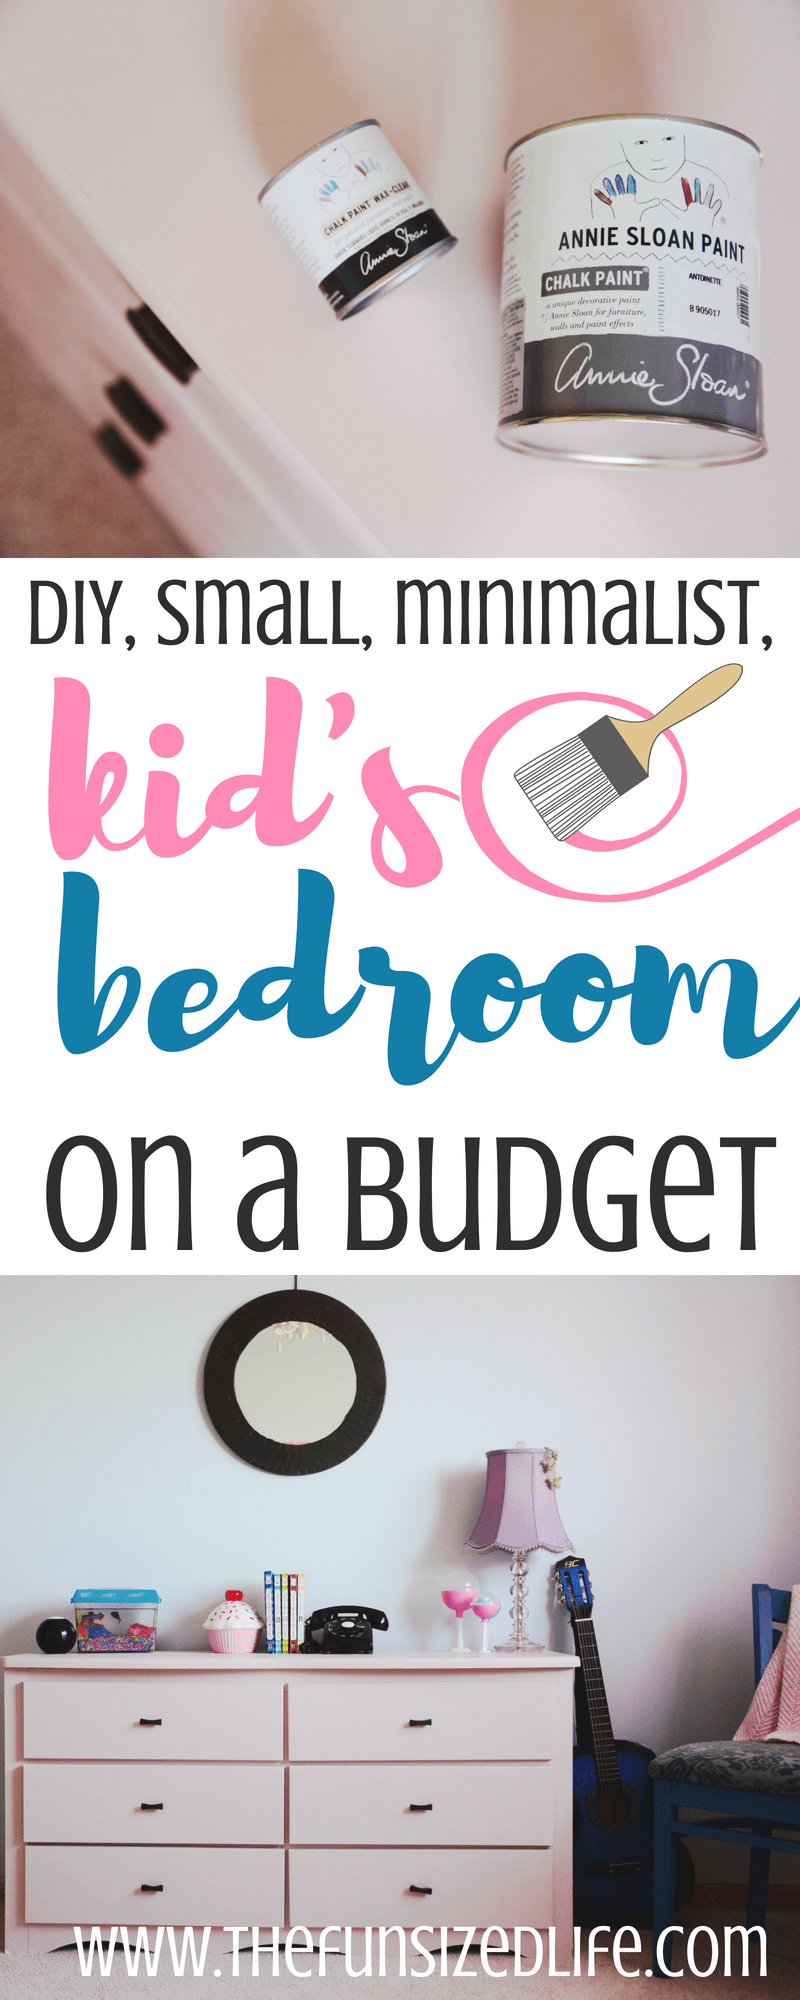 This gorgeous minimalist kid's bedroom is simple, cozy and perfect! #diy #minimalistkids #smallbedroom #bedroom #anniesloan #sponsored